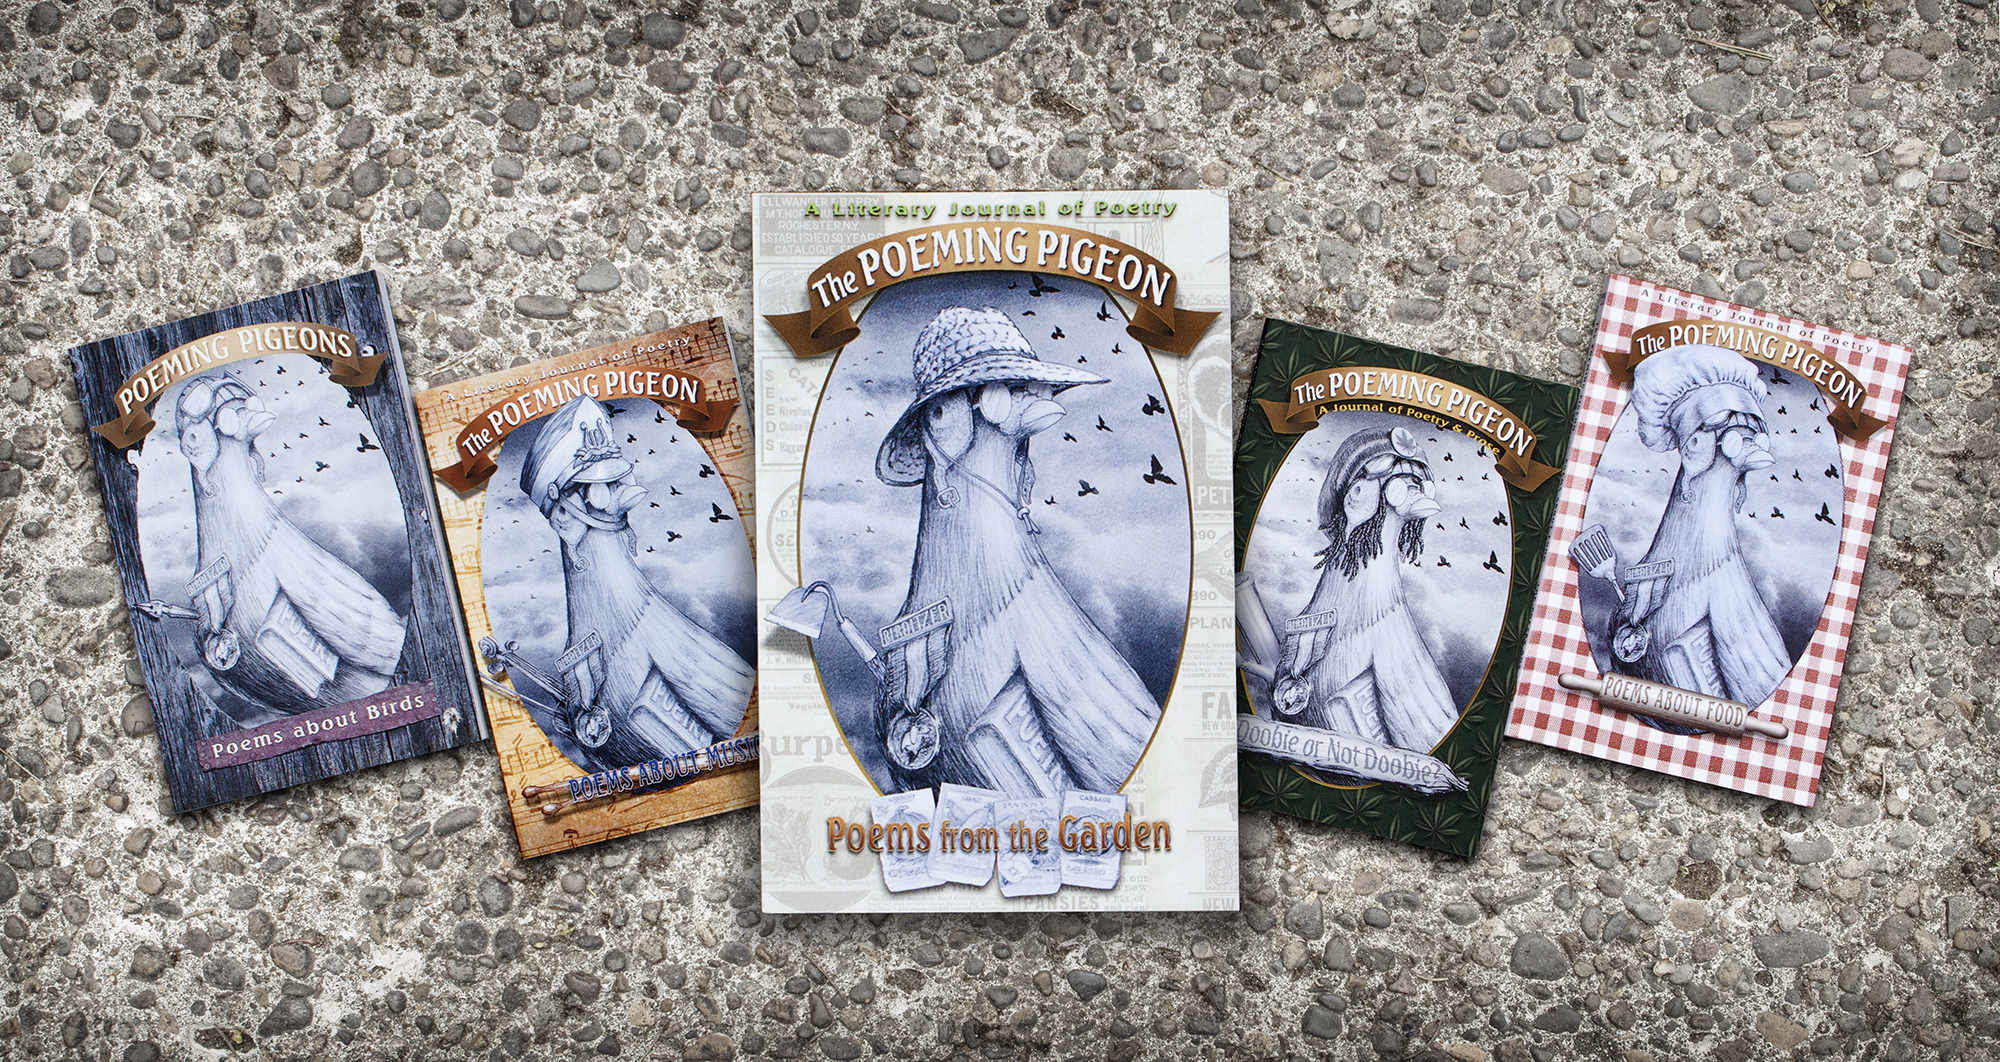 First 5 issues of The Poeming Pigeon